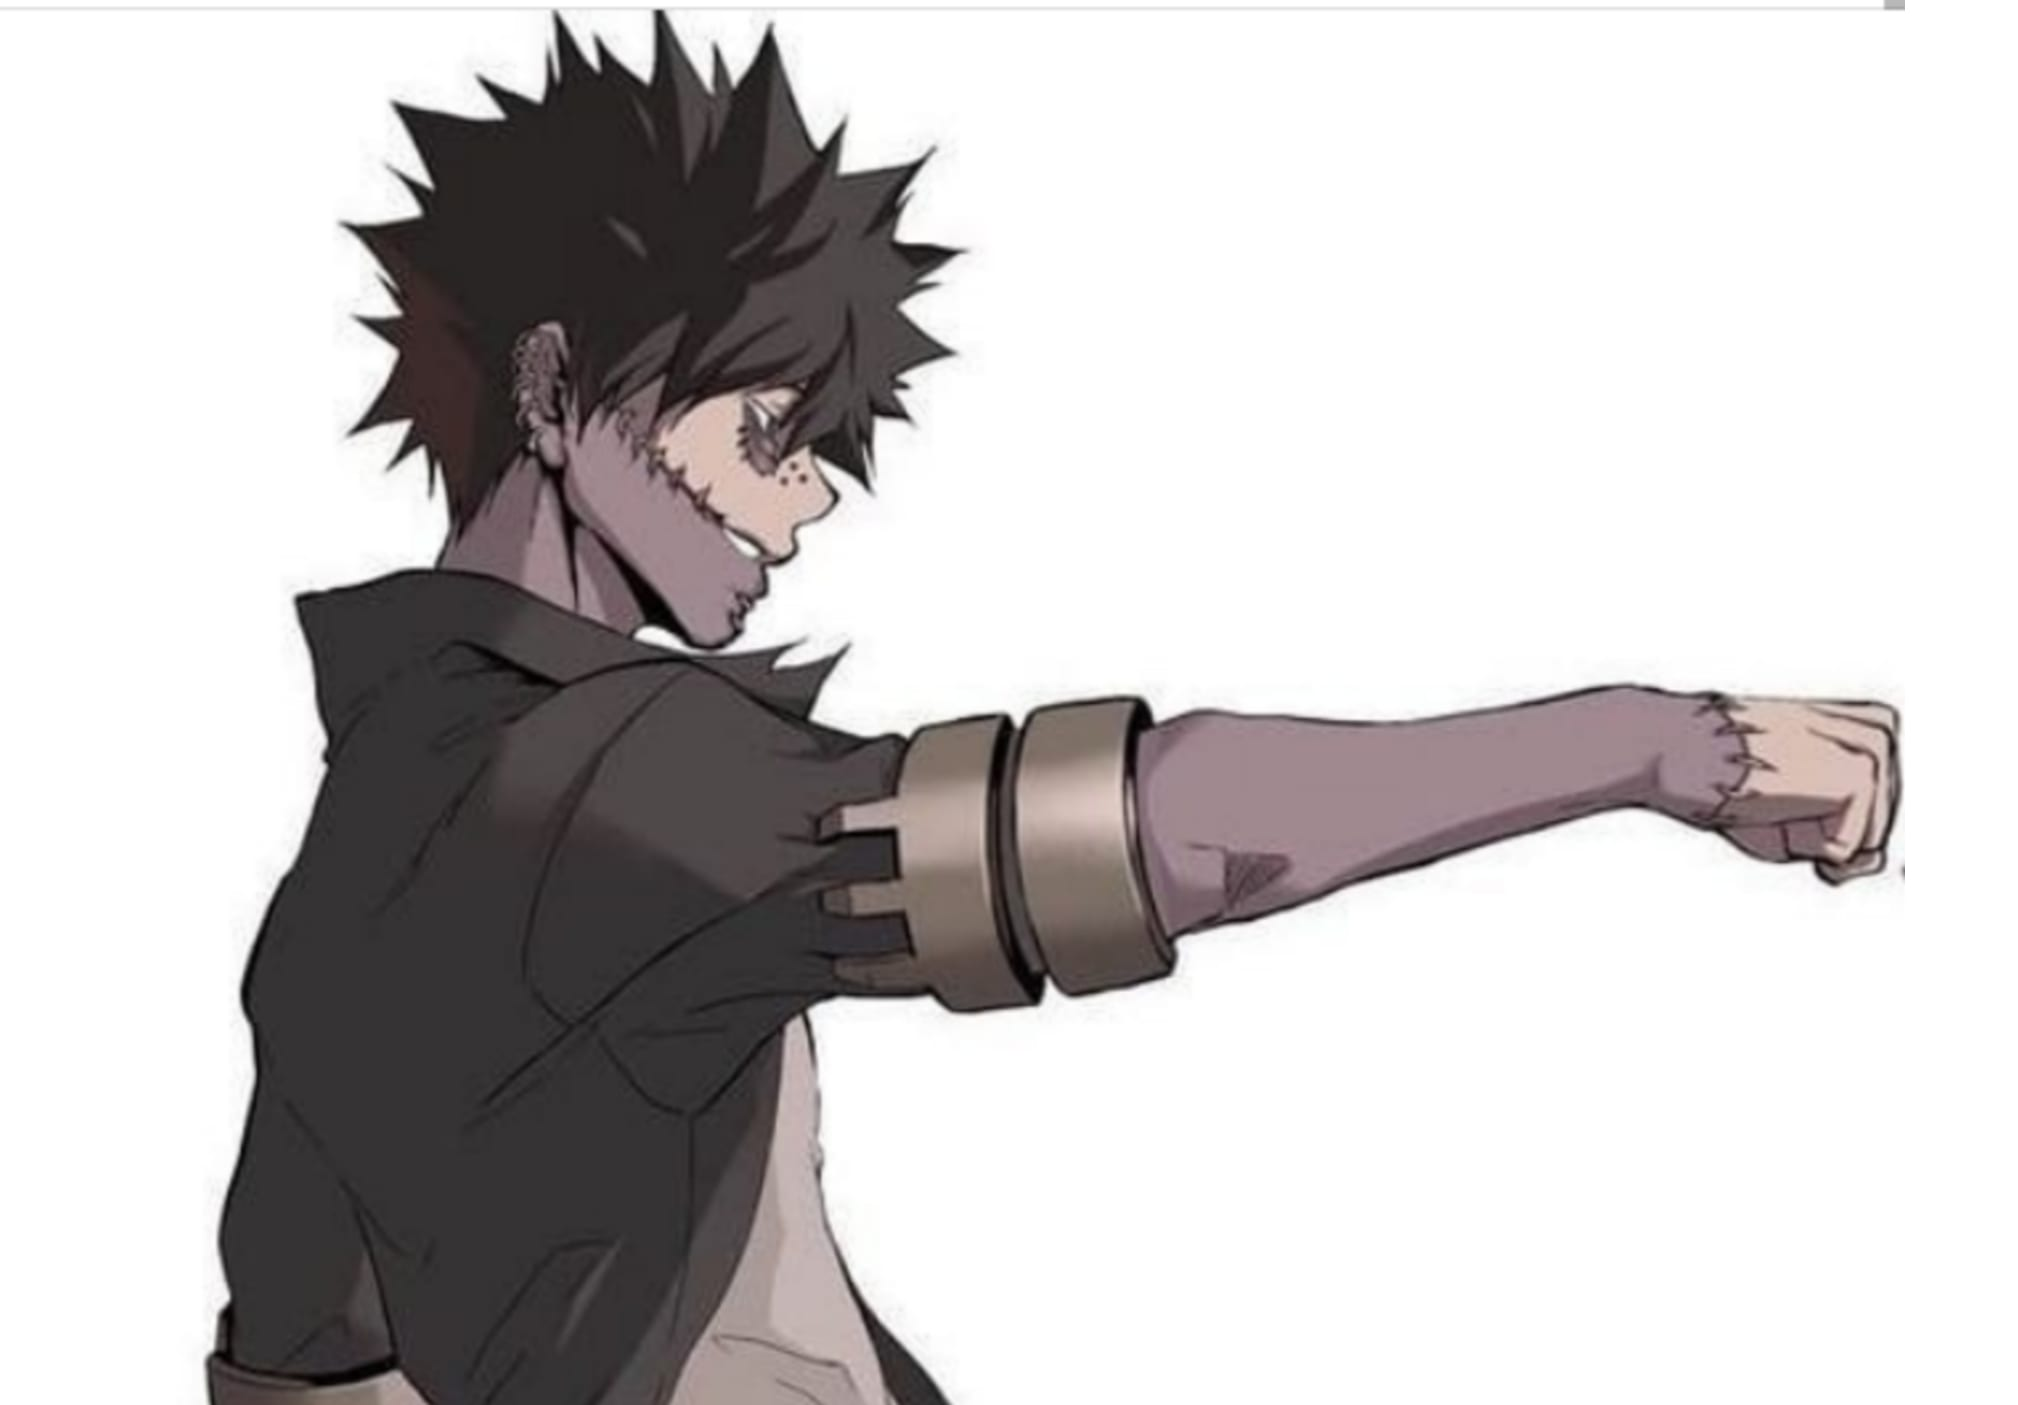 Top ten facts about Dabi